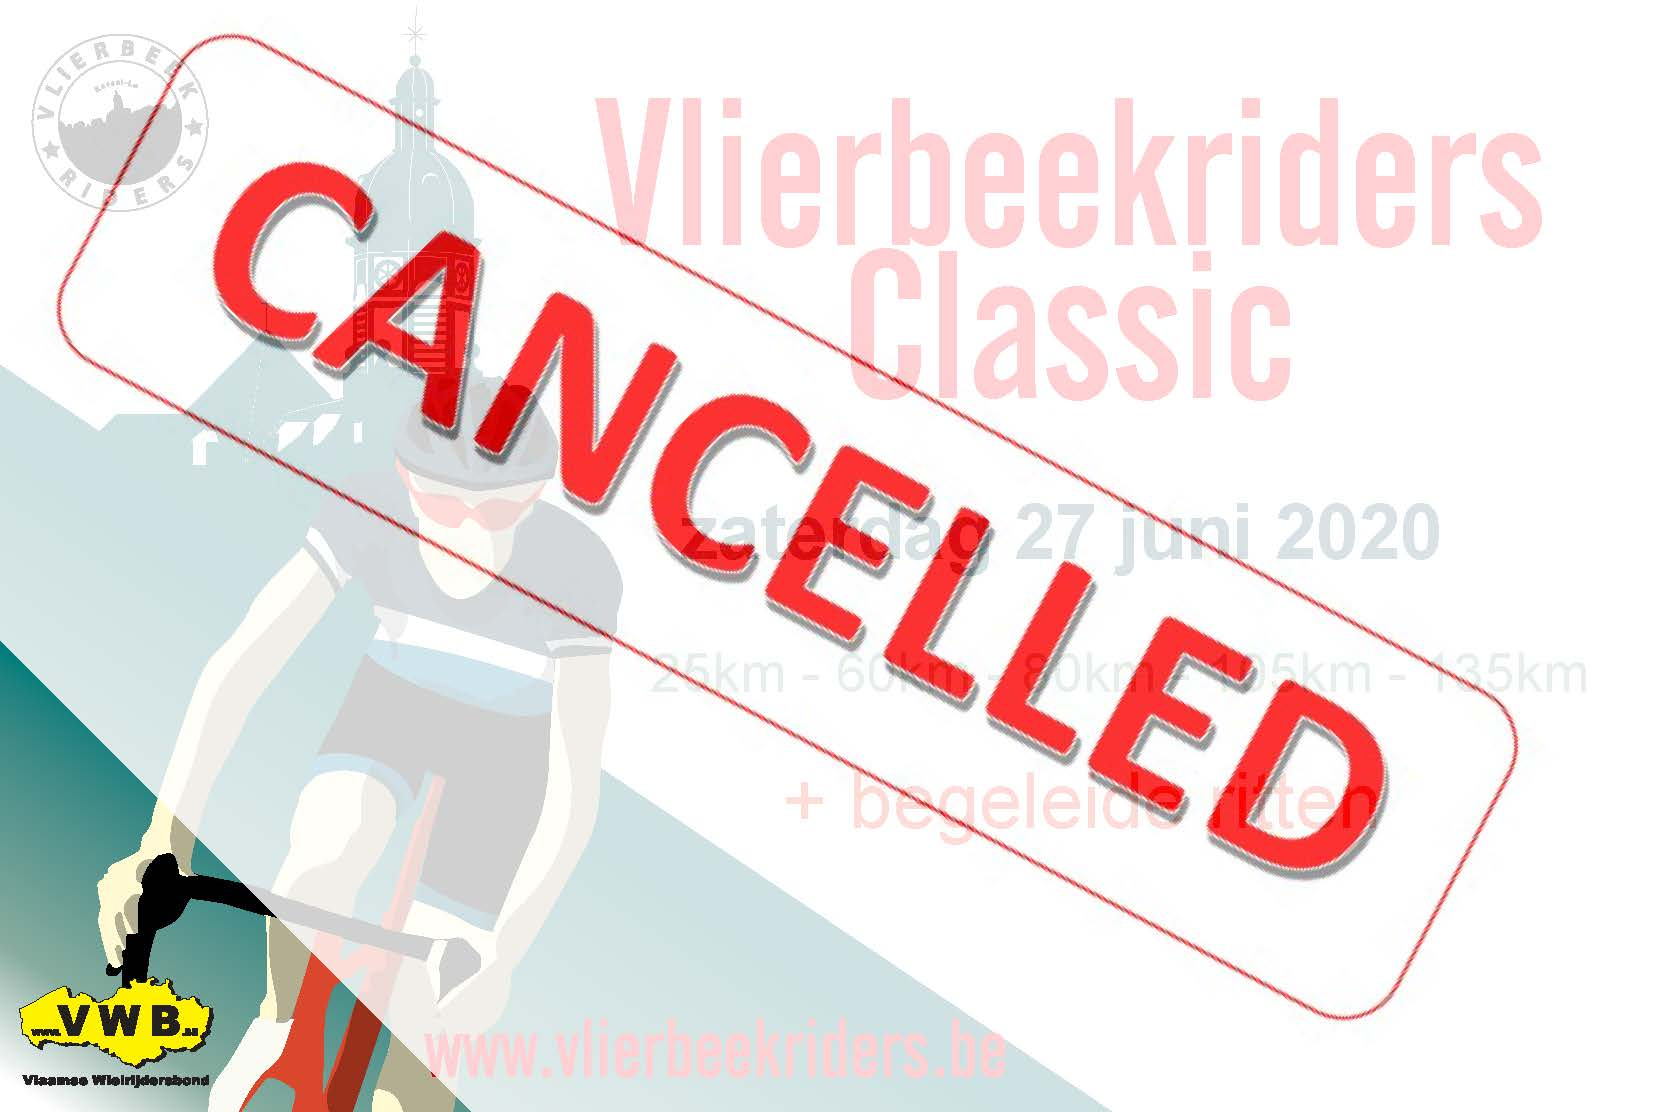 Vlierbeekriders Classic_2020_cancelled